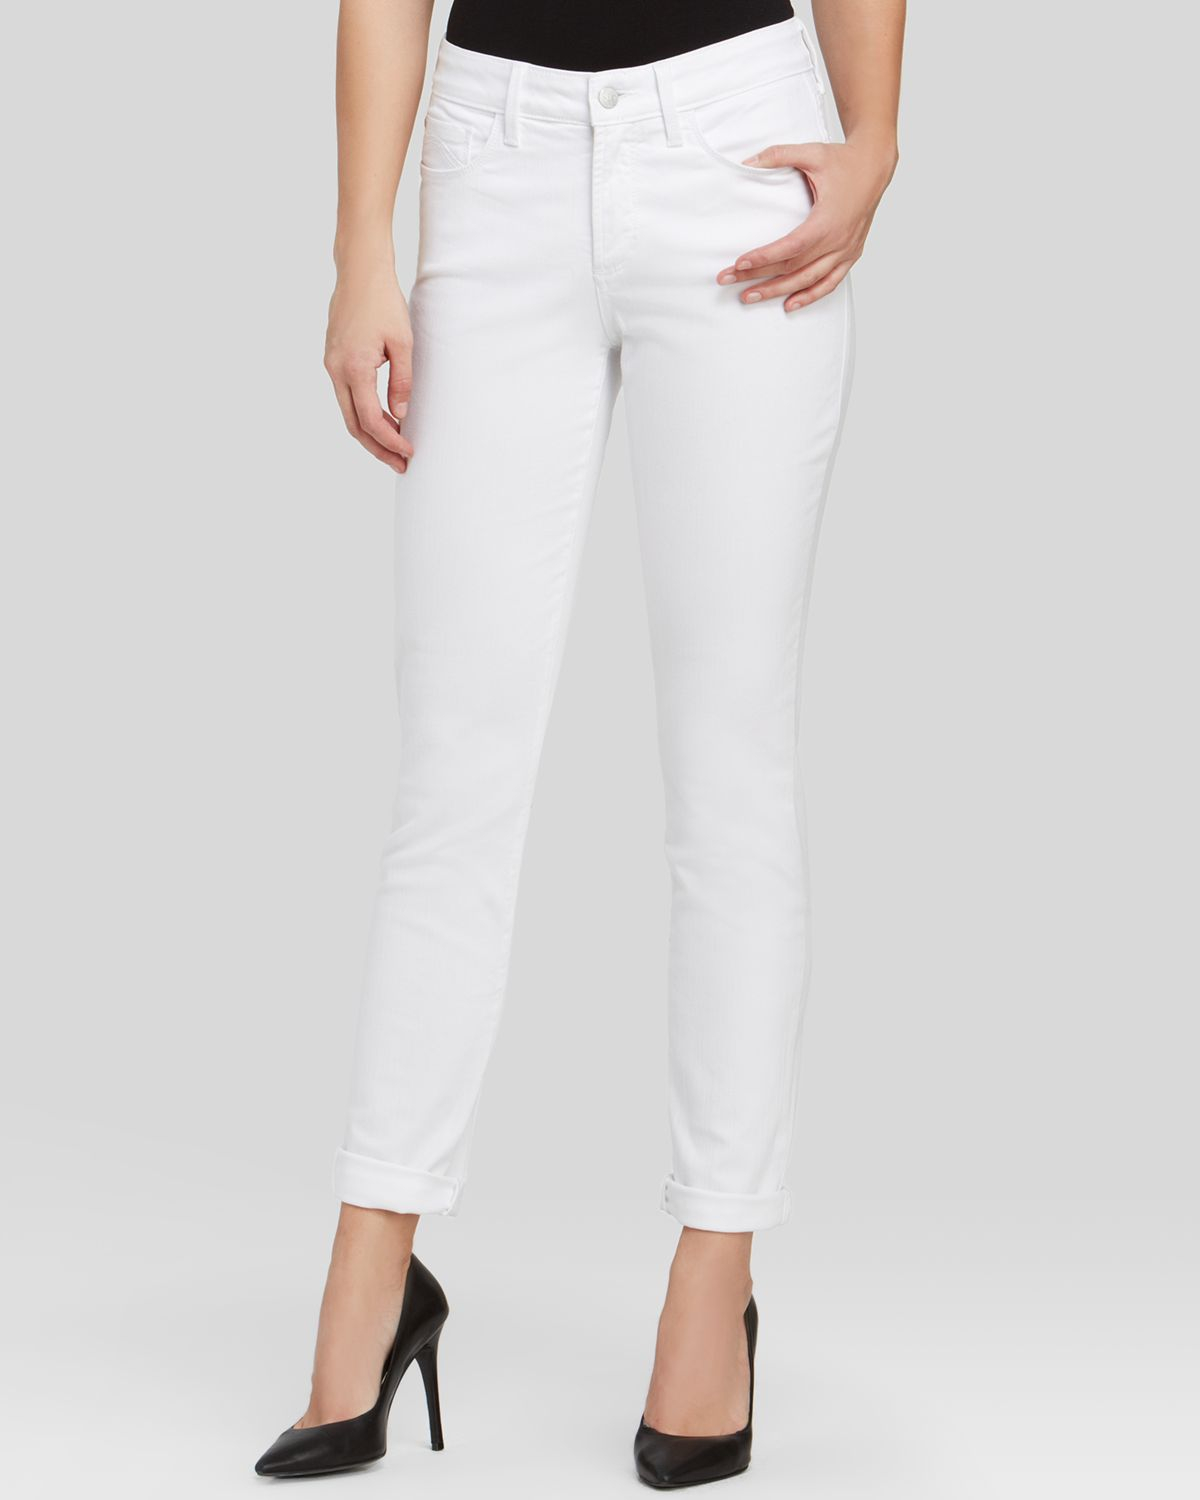 Nydj Alina Legging Jeans In Optic White in White | Lyst